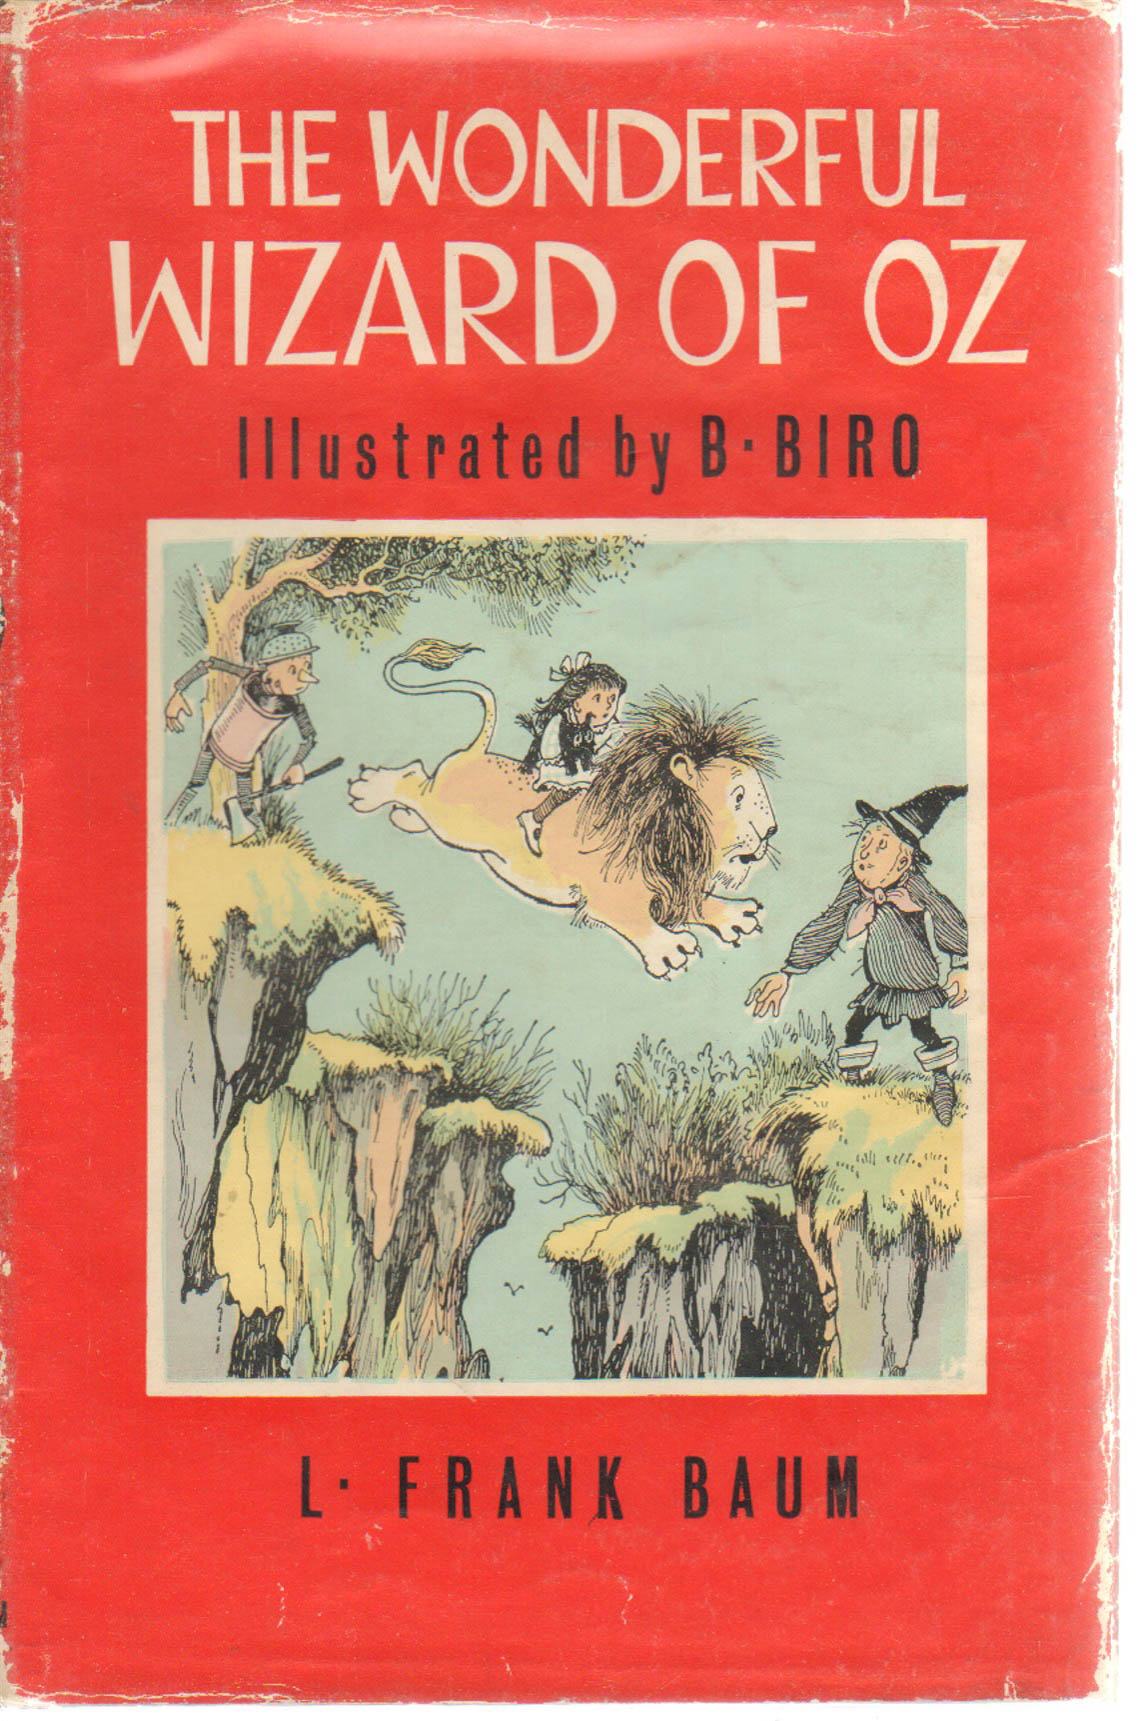 the wonderful wizard of oz essay The wizard of oz and populism essays since 1964 the story as well as the movie known as the wizard of oz has lost much of its innocence prior to 1964 the wizard of oz was a tale of.